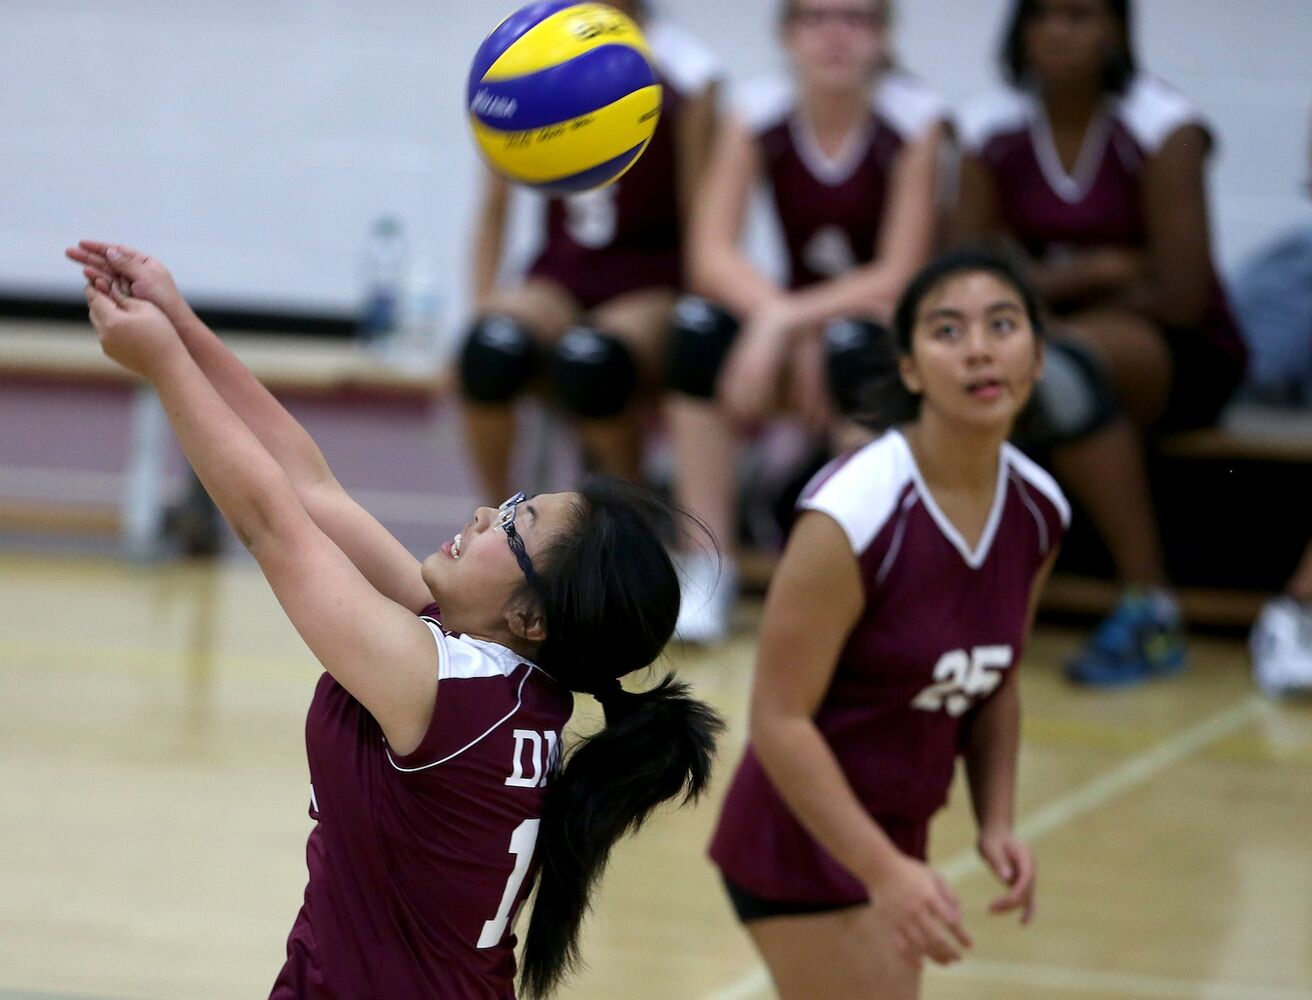 DMCI Maroons' Jayvee Altasin (right) watches as teammate Jacquelynn Joseph bumps the ball.